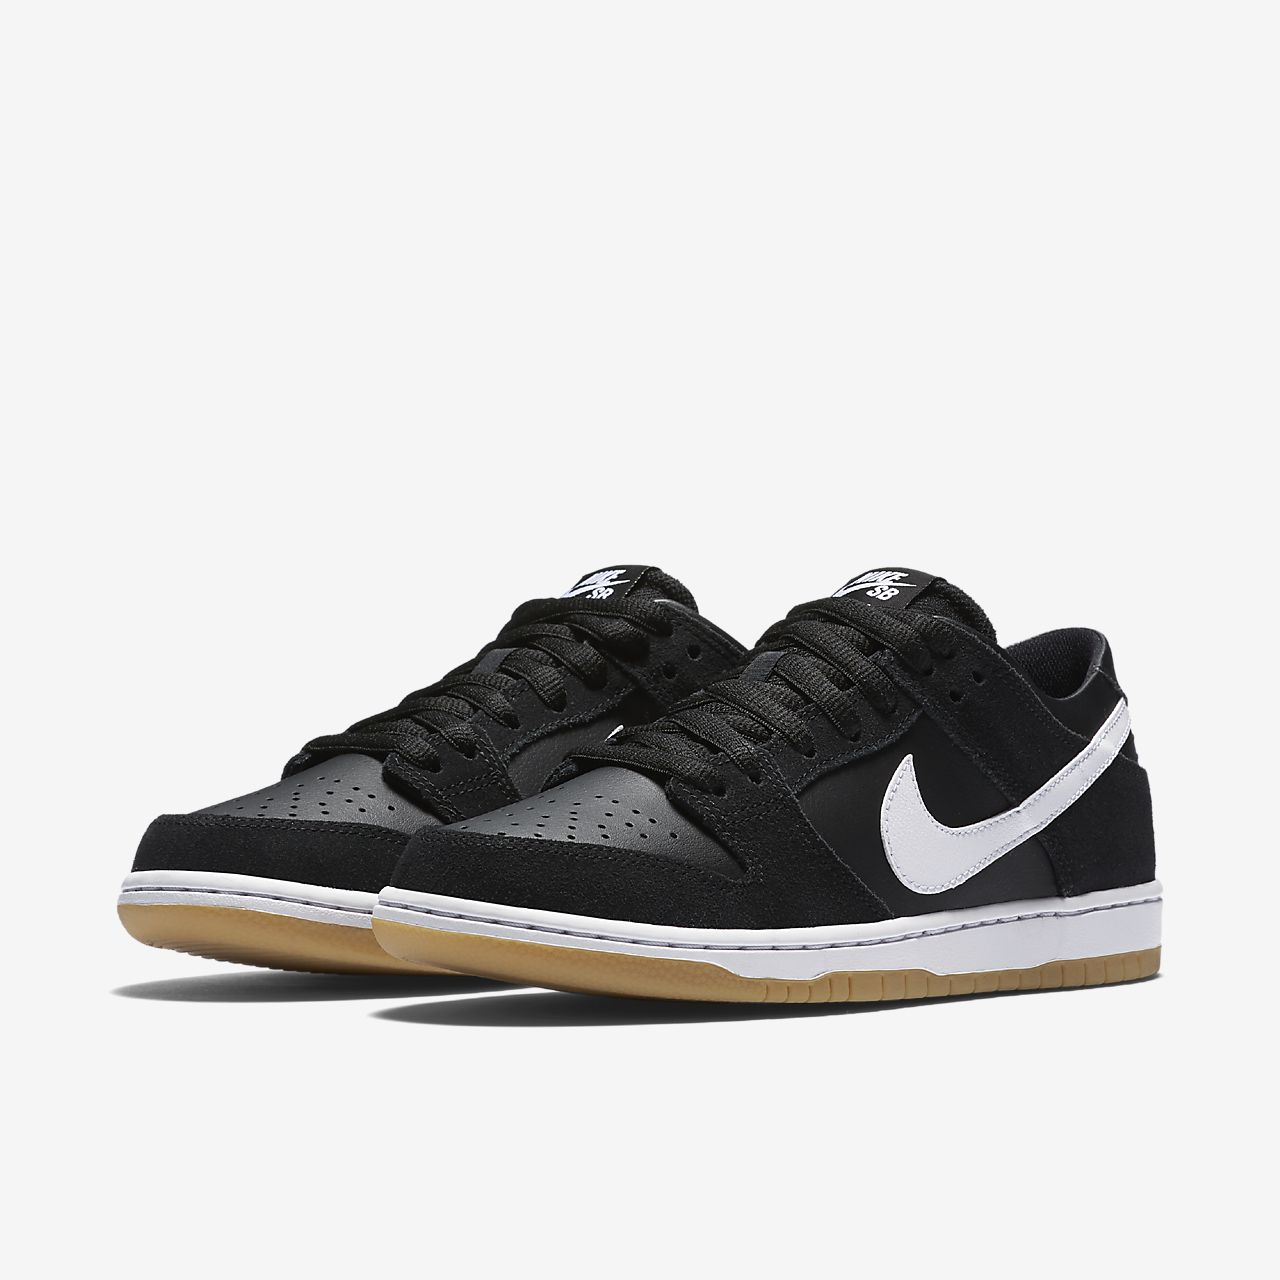 nike sb dunks black